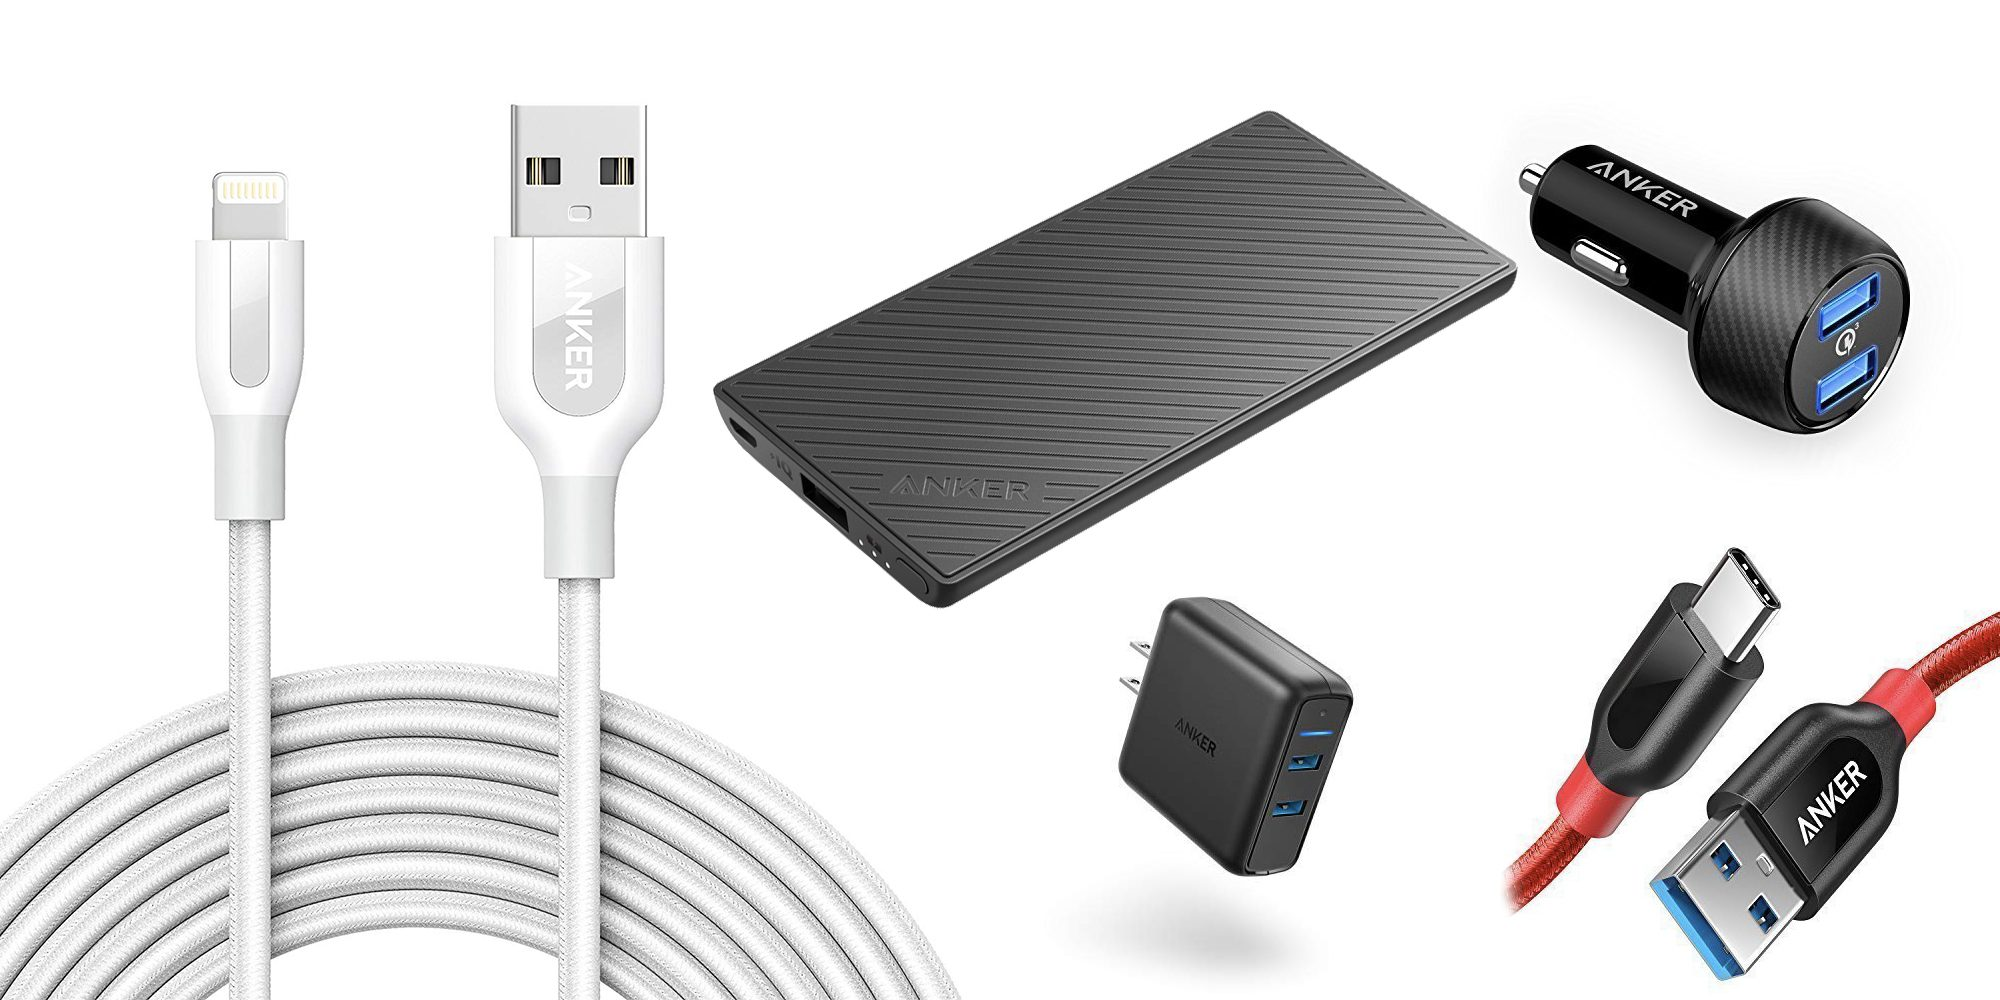 9to5Toys Lunch Break: Anker 1-Day Accessory Sale from $8, BOGO 20% off iTunes GC, Bose QC 35 II Headphones $299, more